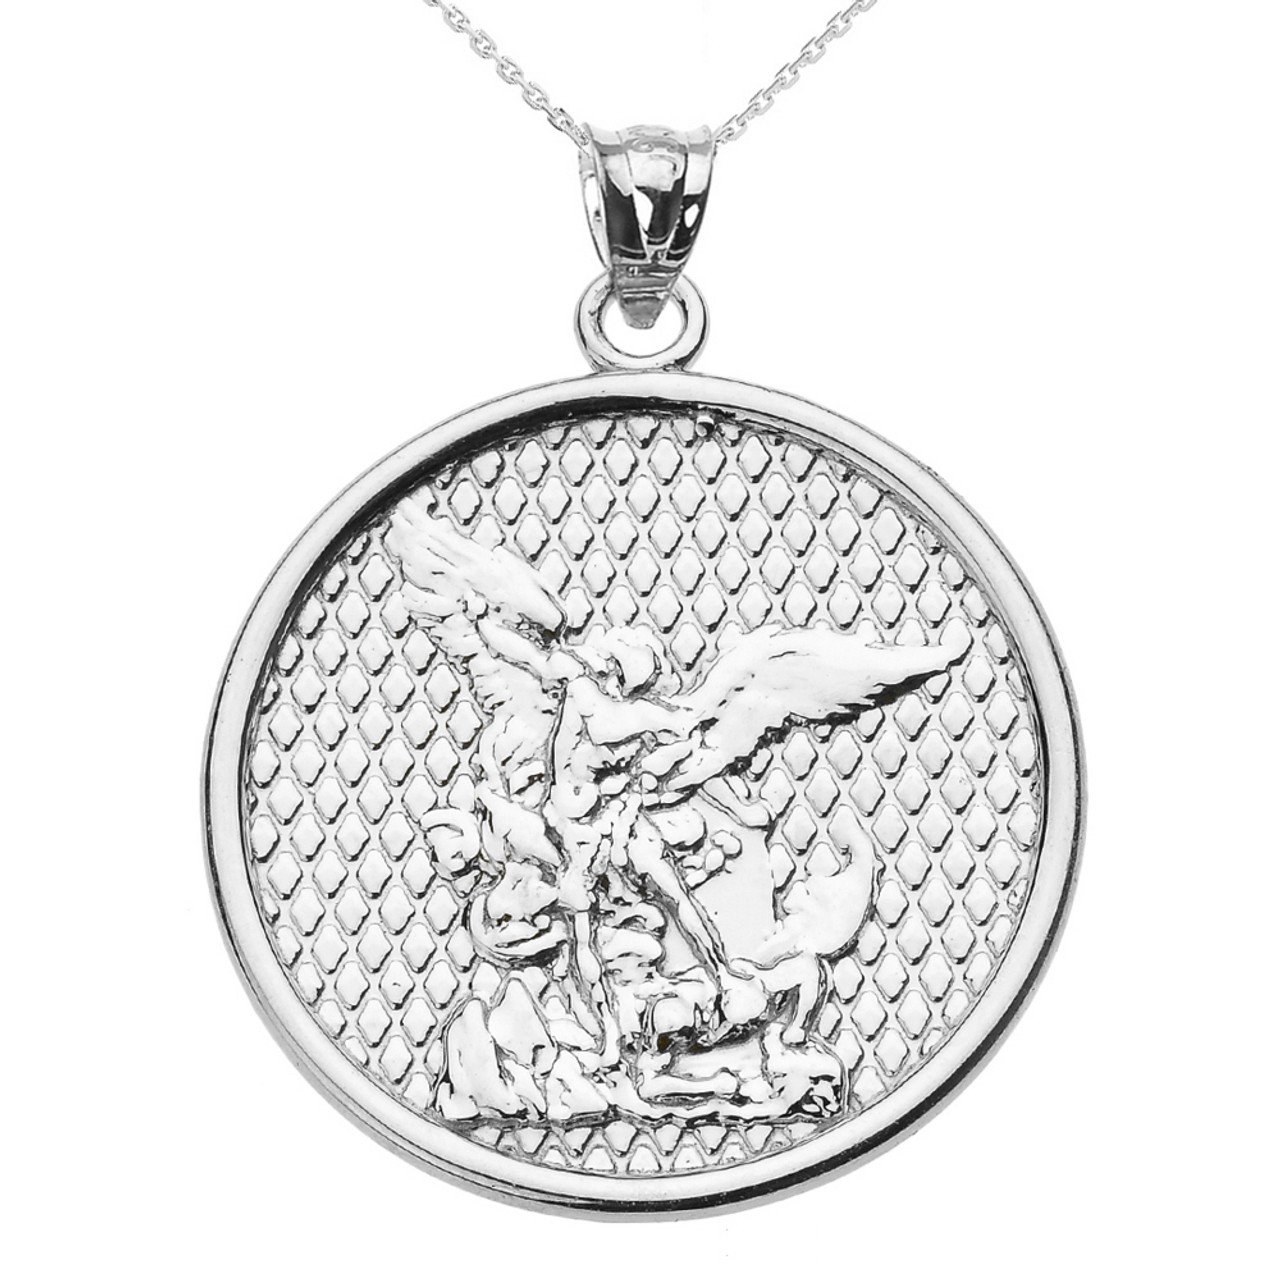 dp necklace medal seal protection sterling christian jewellery archangel india pendant buy talisman silver at michael amazon prices st online michaels low in